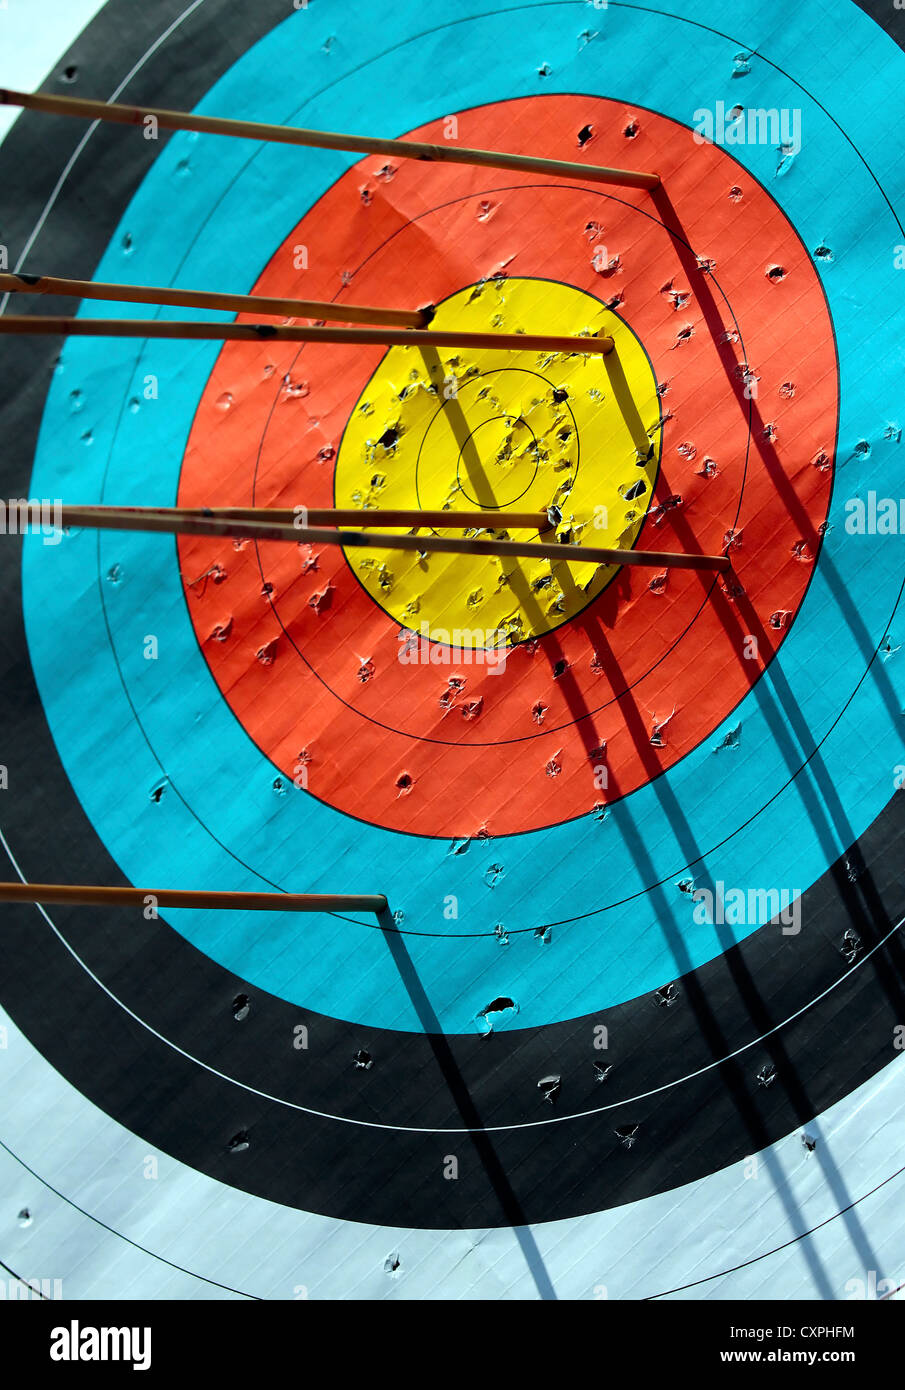 Target,Circle,Arrow,Archery,Descriptive color,Concepts,Competition,Target shooting,Target,Shoot,Bull eye,Sport,Focus Stock Photo